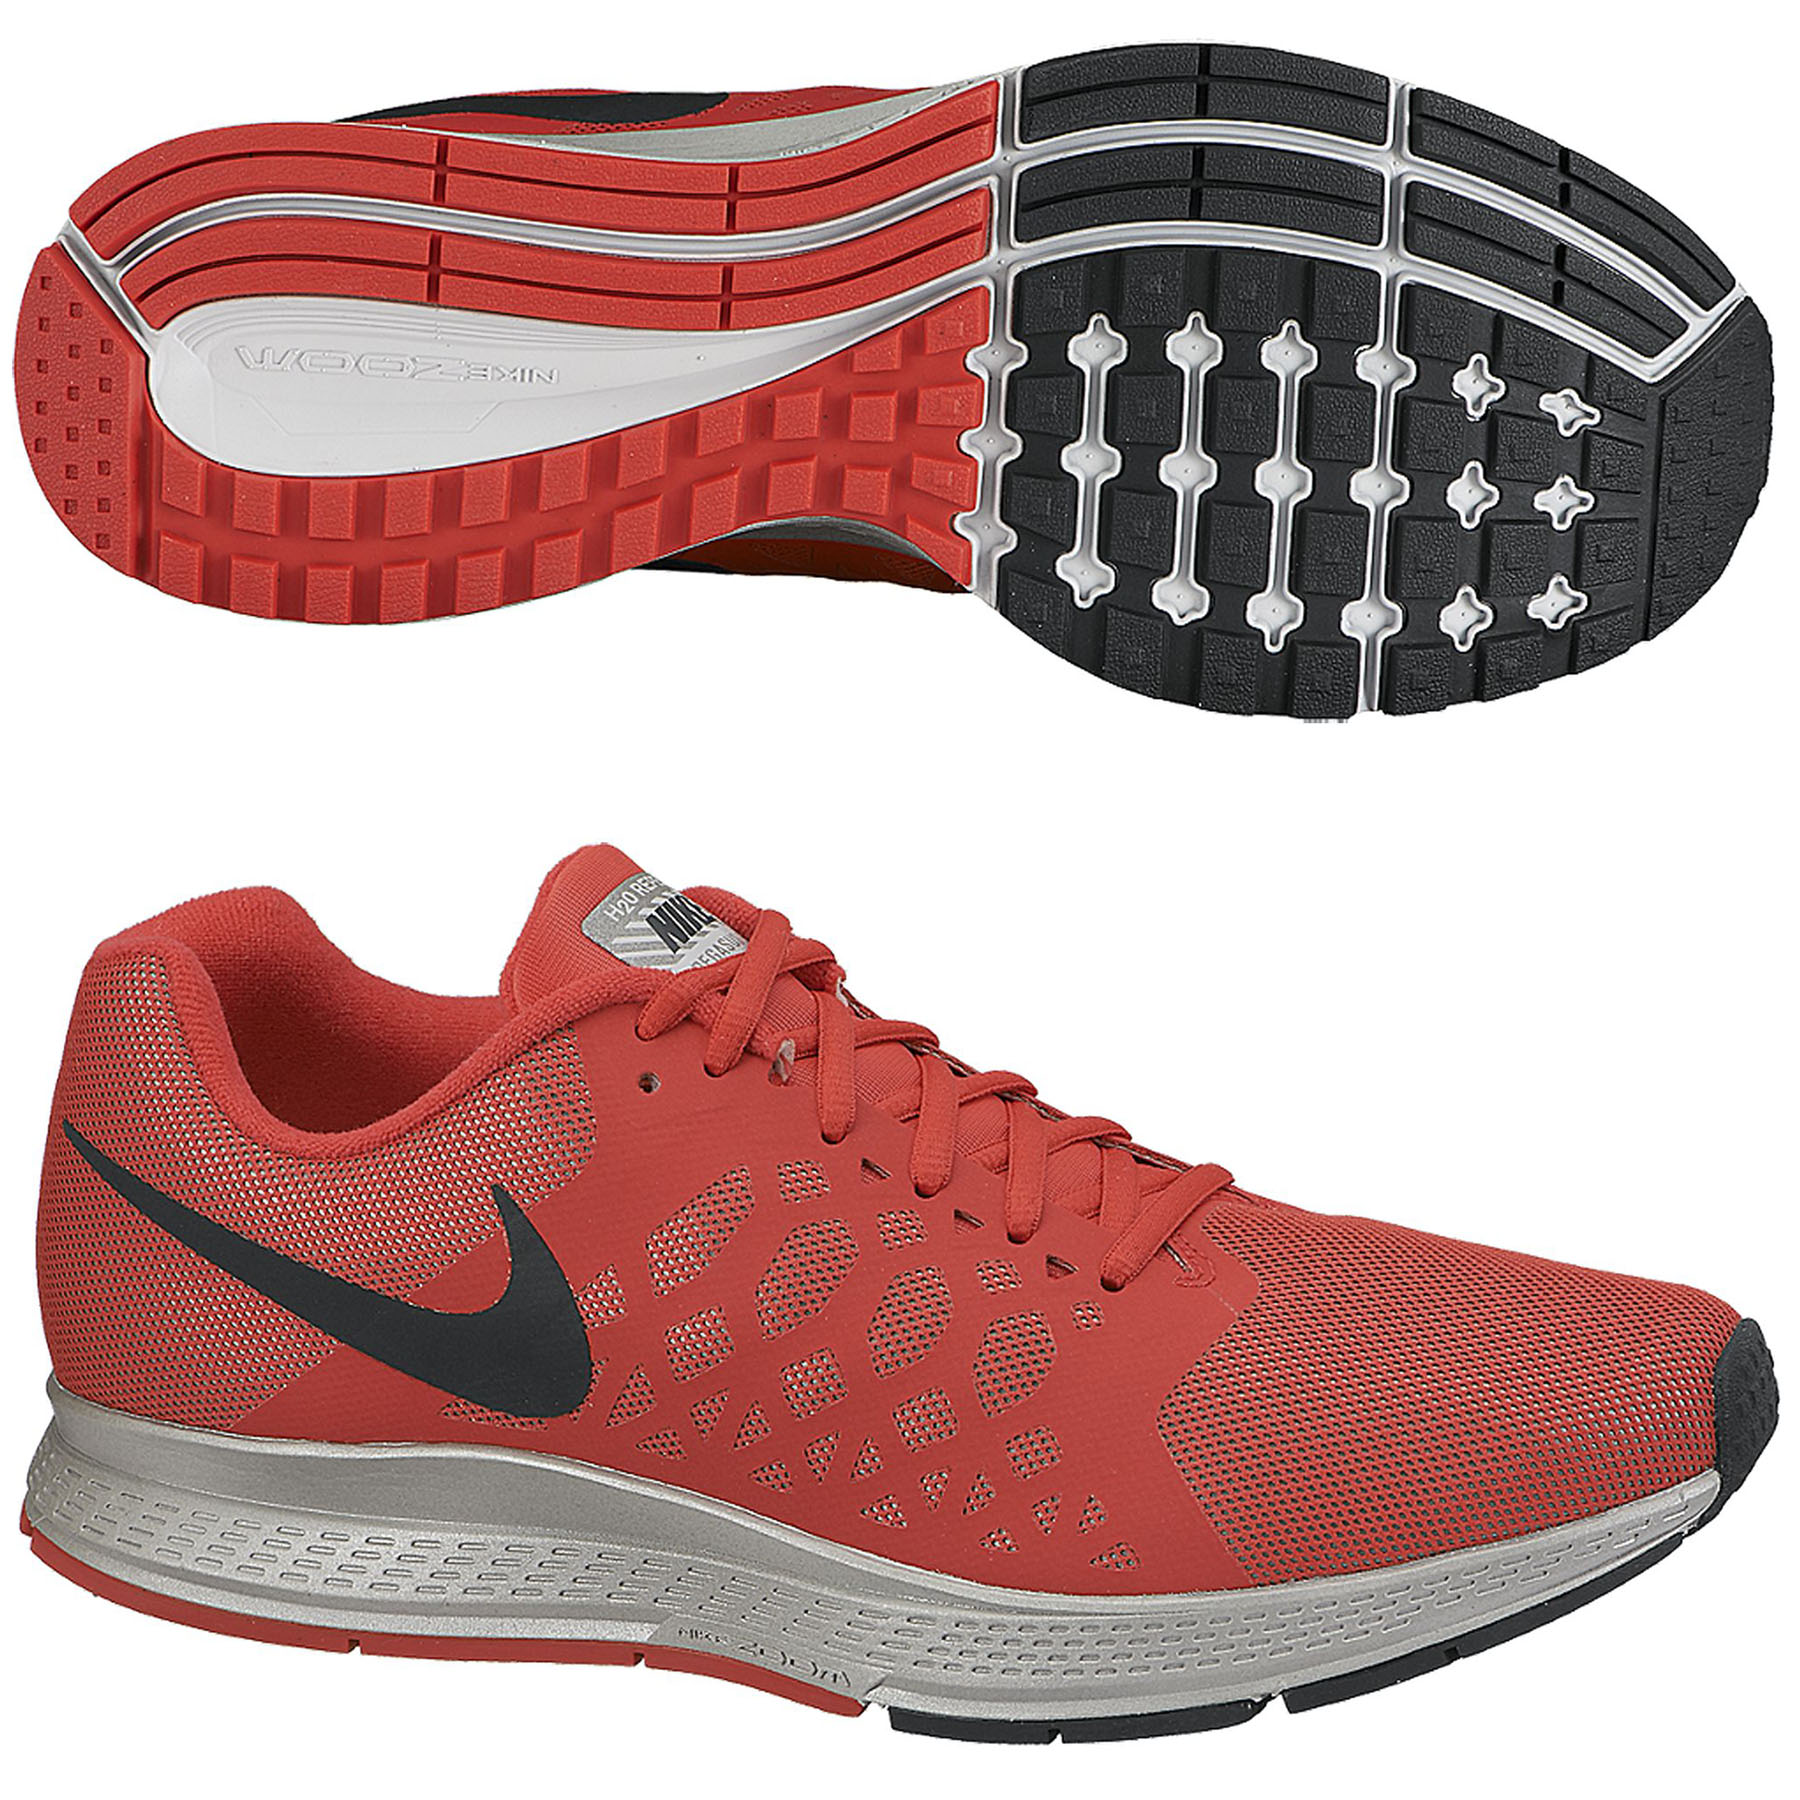 Nike Zoom Pegasus 31 Flash Trainers Red